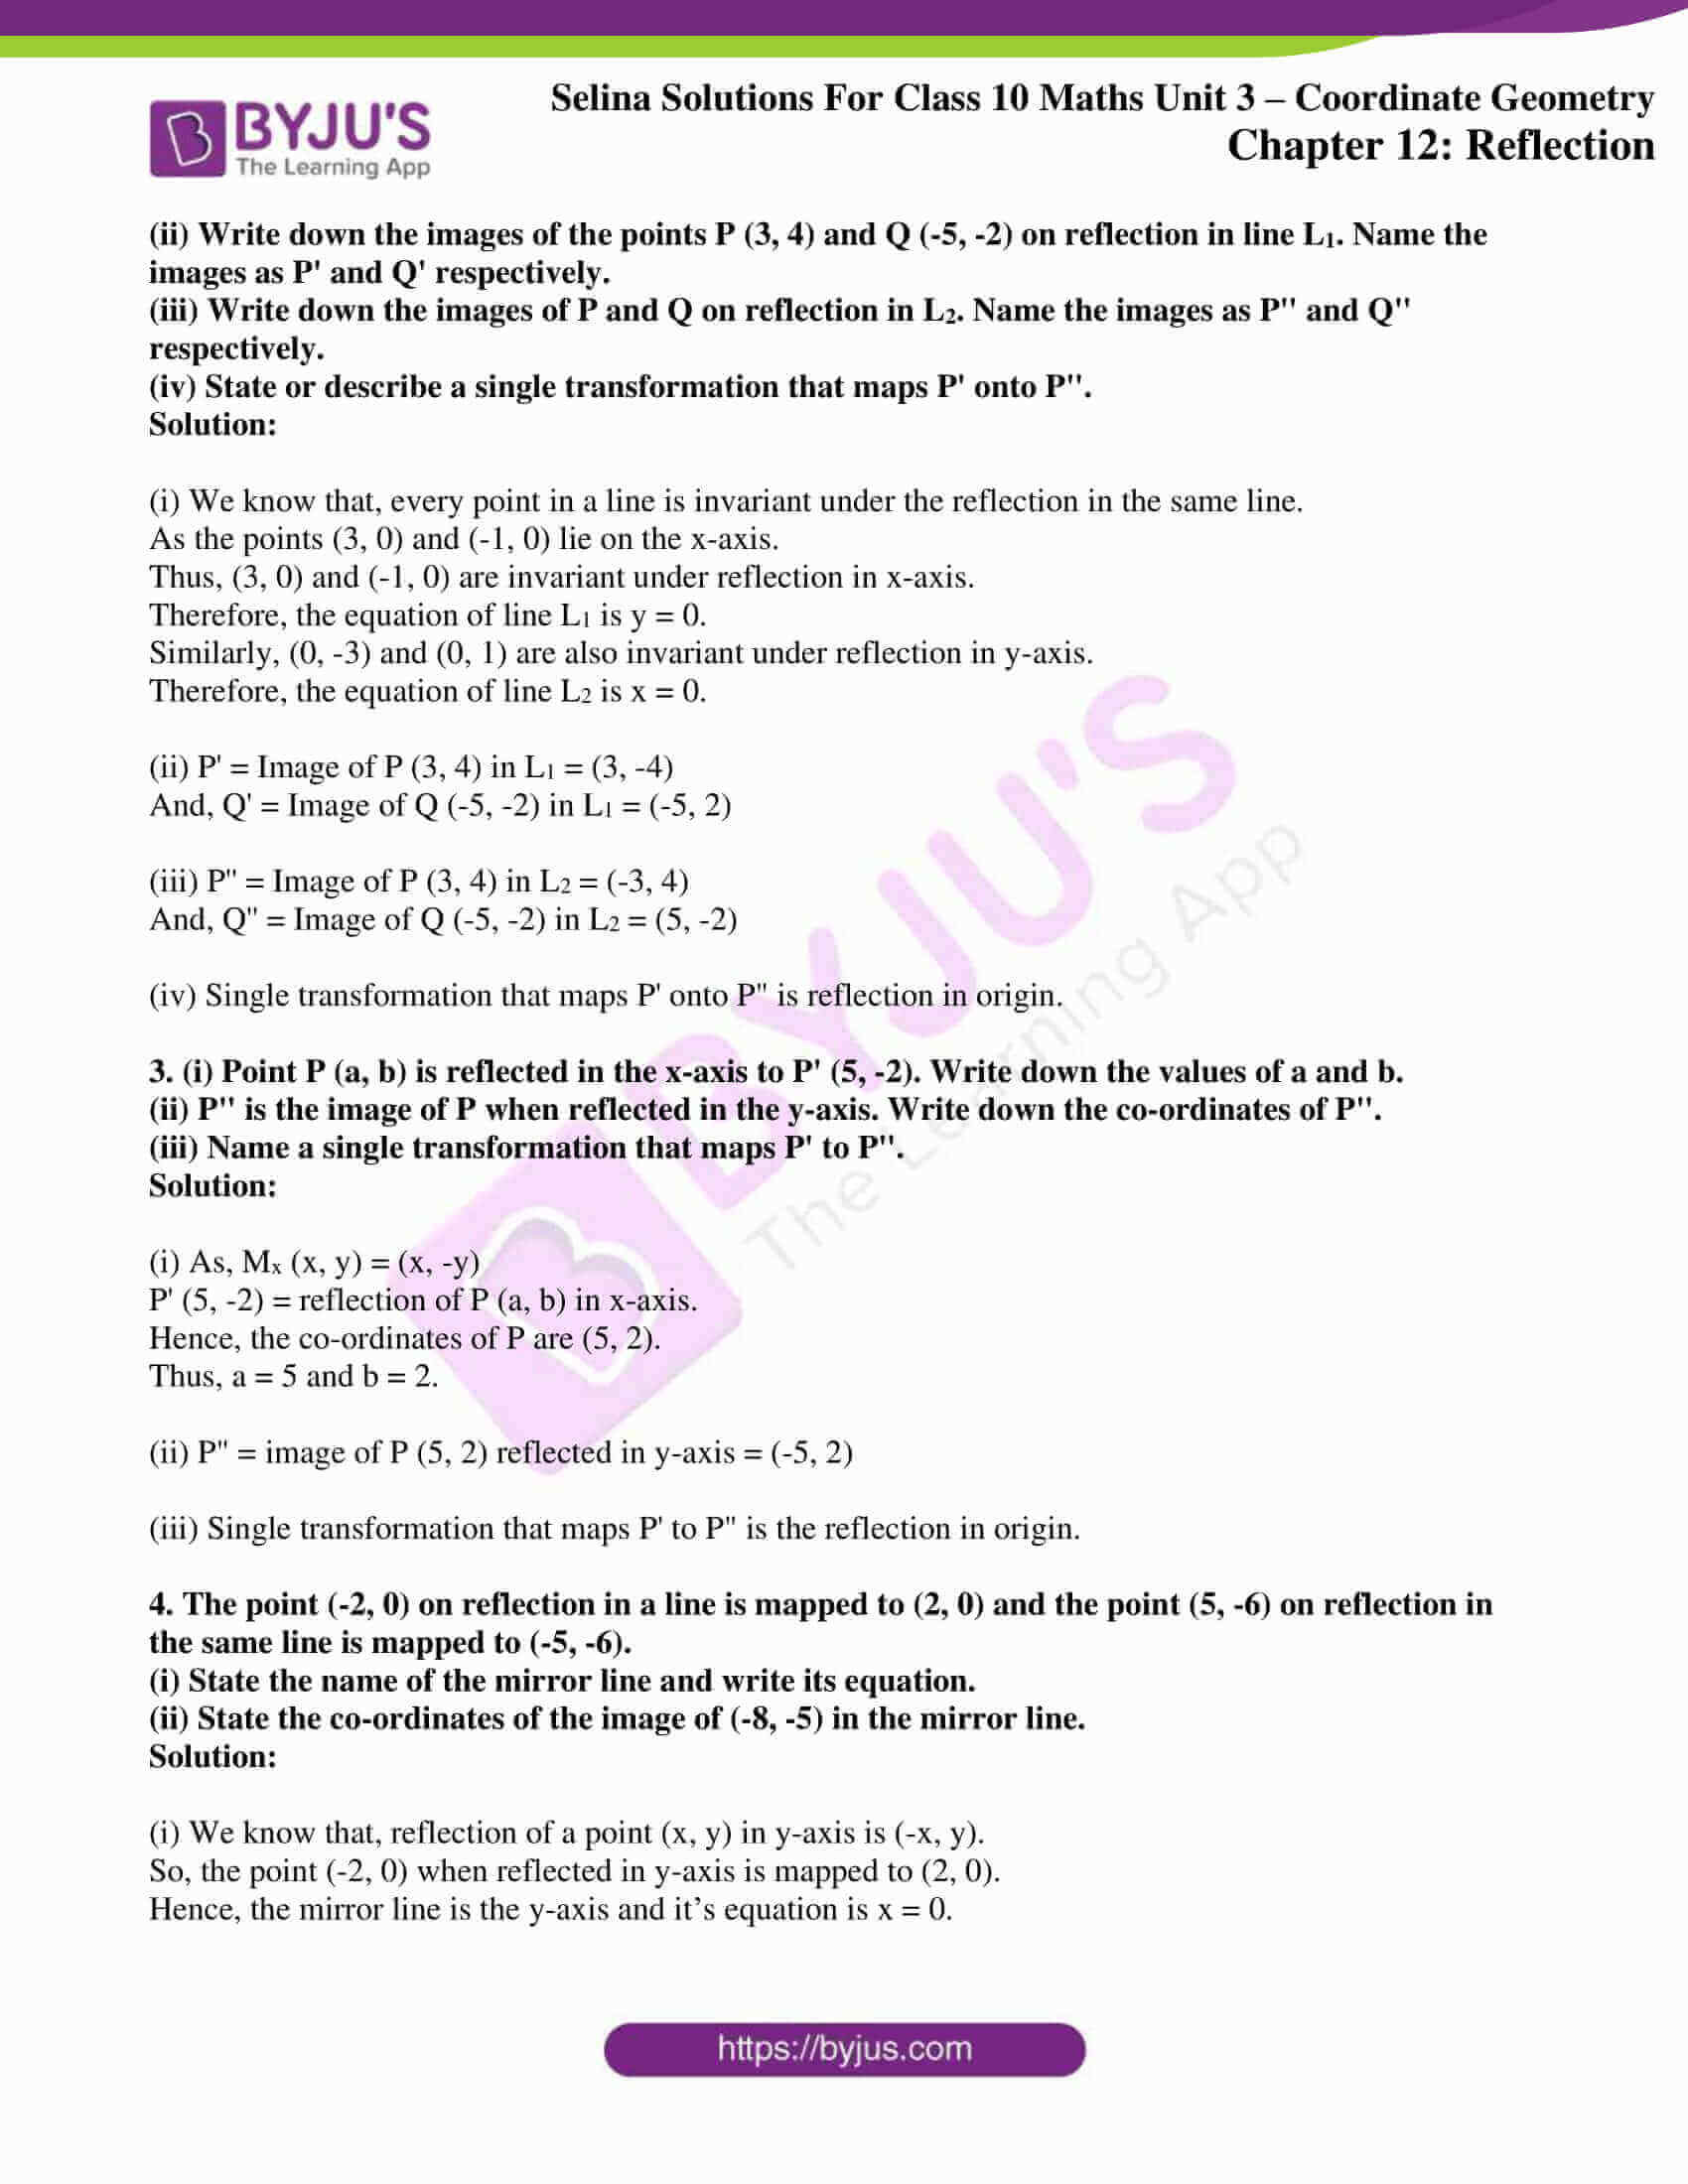 selina solution concise maths class 10 chapter 12 ex b 2